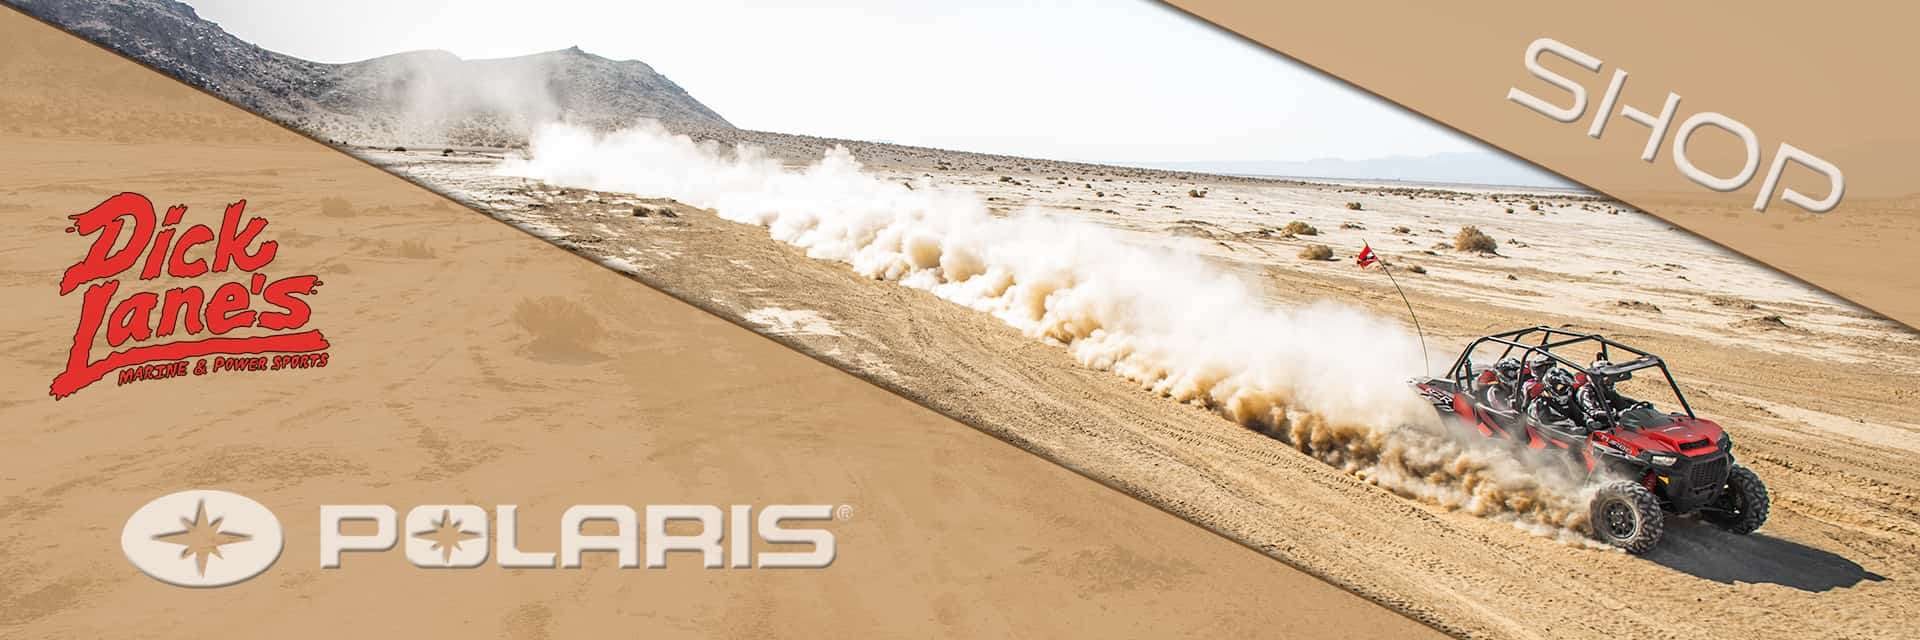 Polaris is sold at Dick Lane's Marine and Powersports